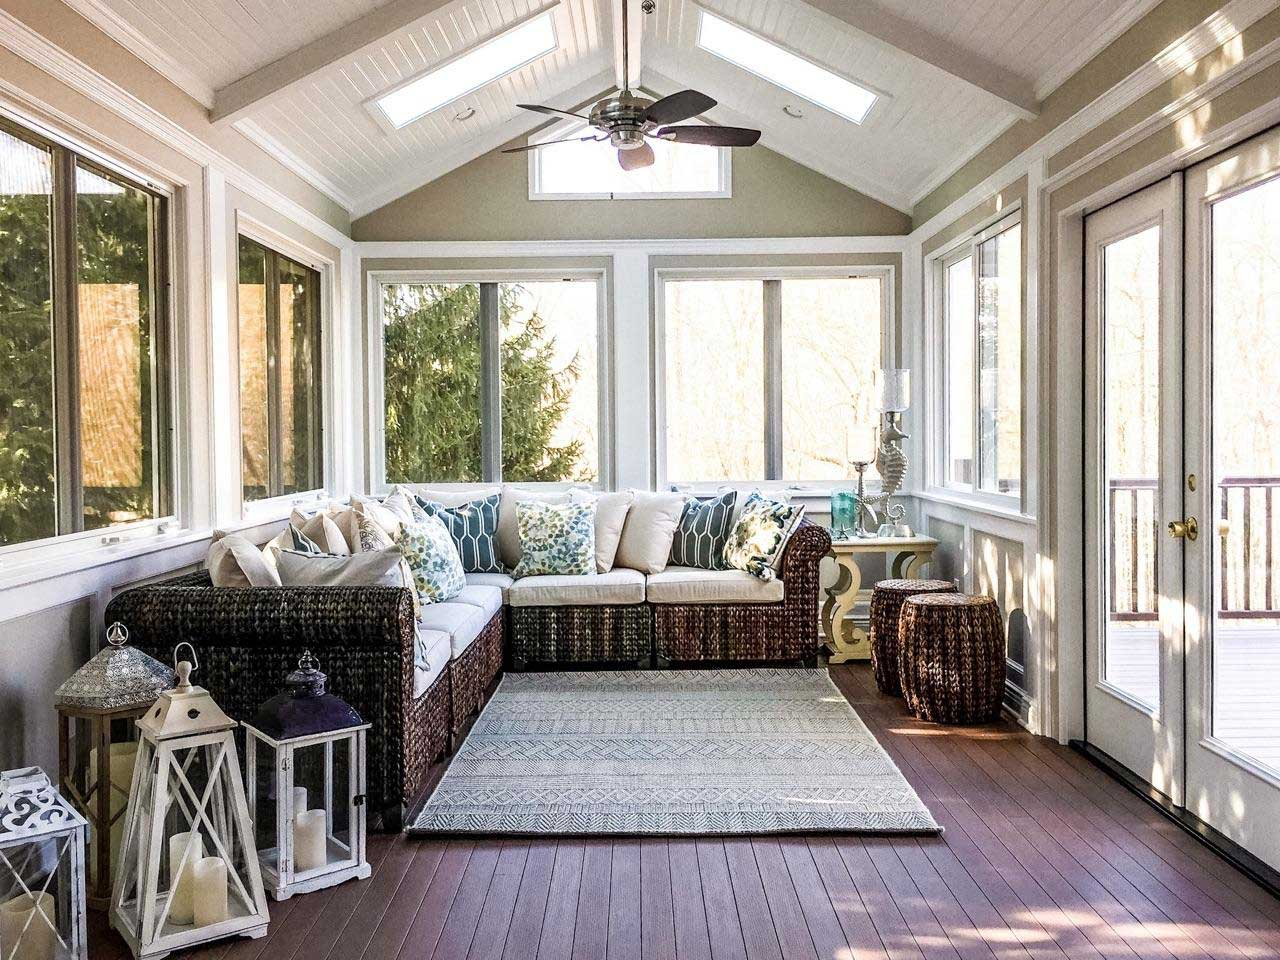 Sun room with large windows, two glass doors, ceiling fan and skylights.